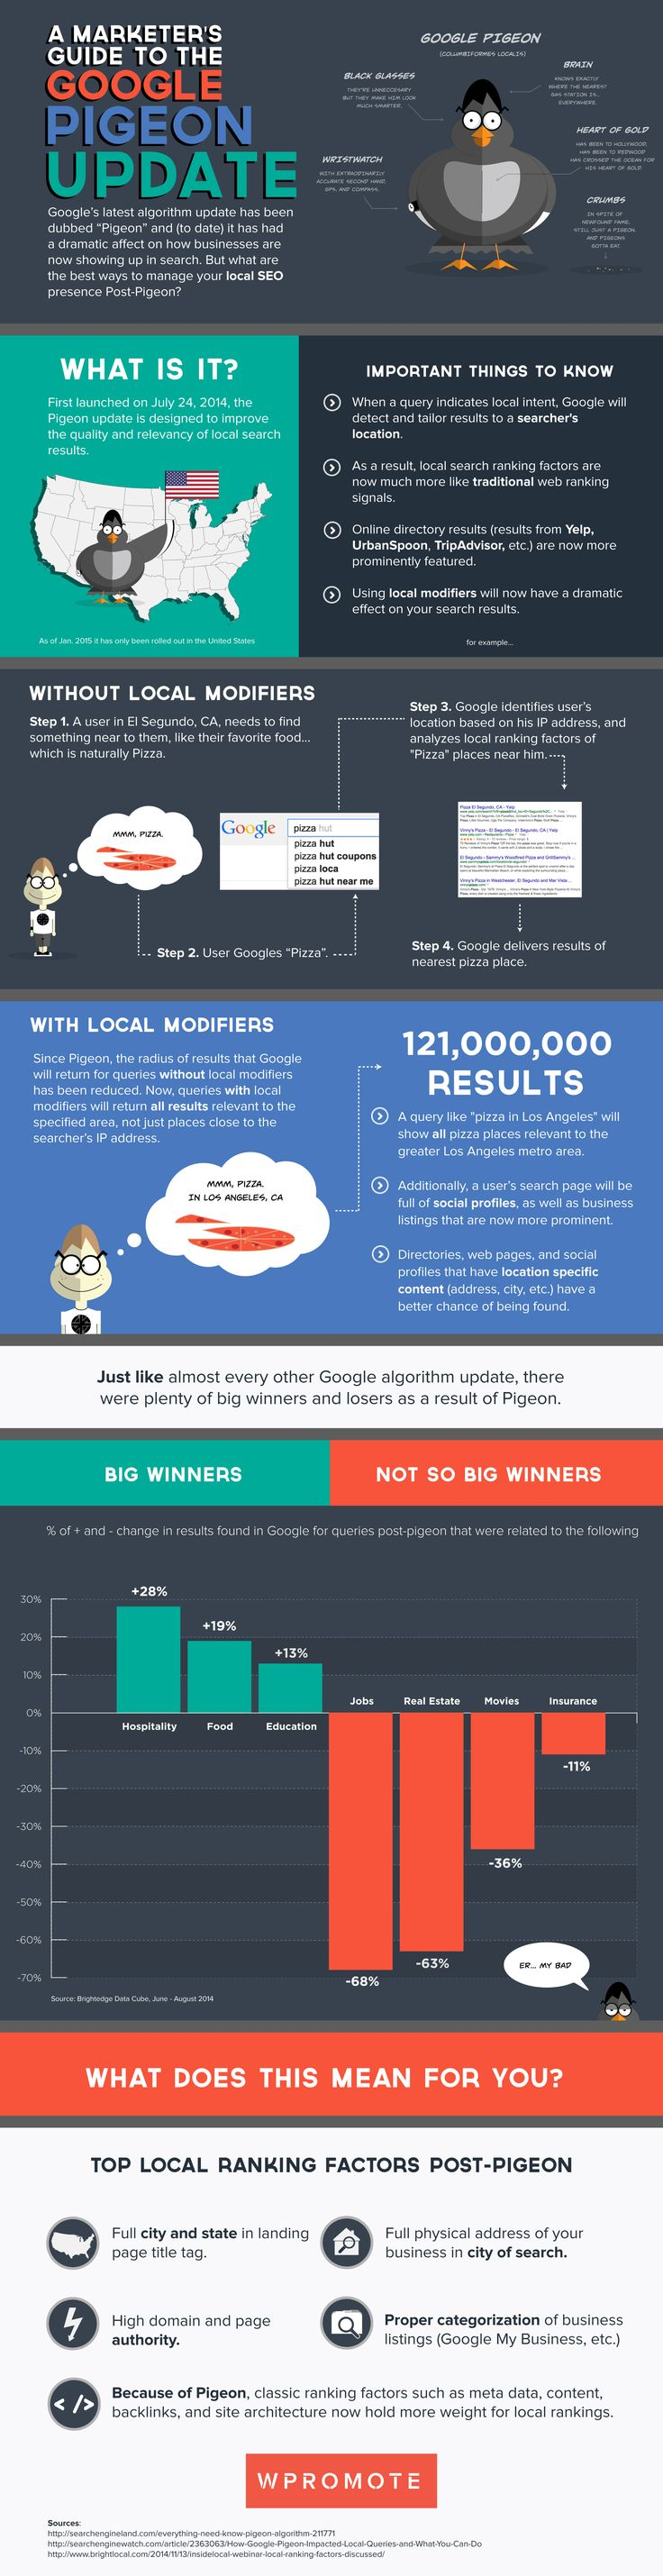 A Marketer's Guide to the Google Pigeon Update #infographic #GoogleUpdate #PigeonUpdate #Google #SEO #infografa